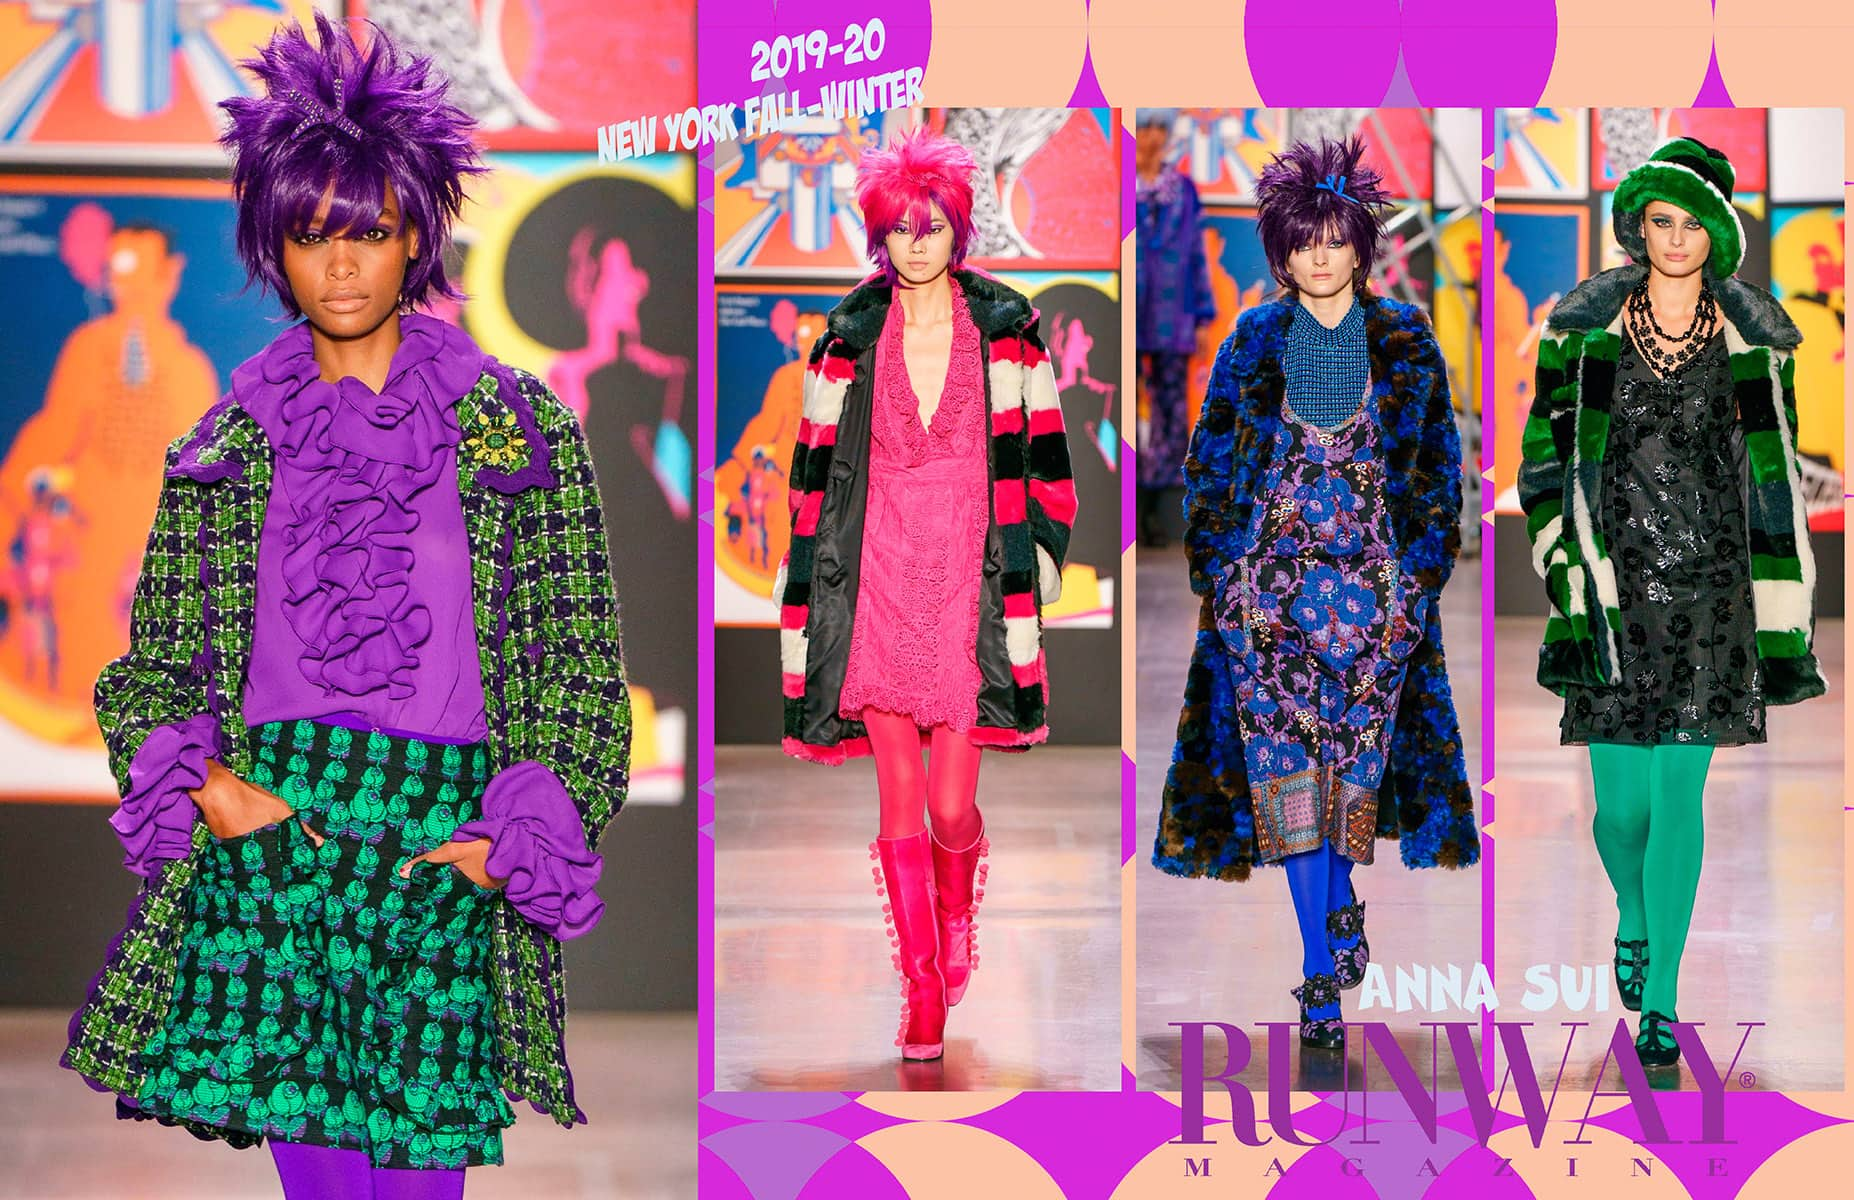 Anna Sui Fall Winter 2019-2020 New York by RUNWAY MAGAZINE